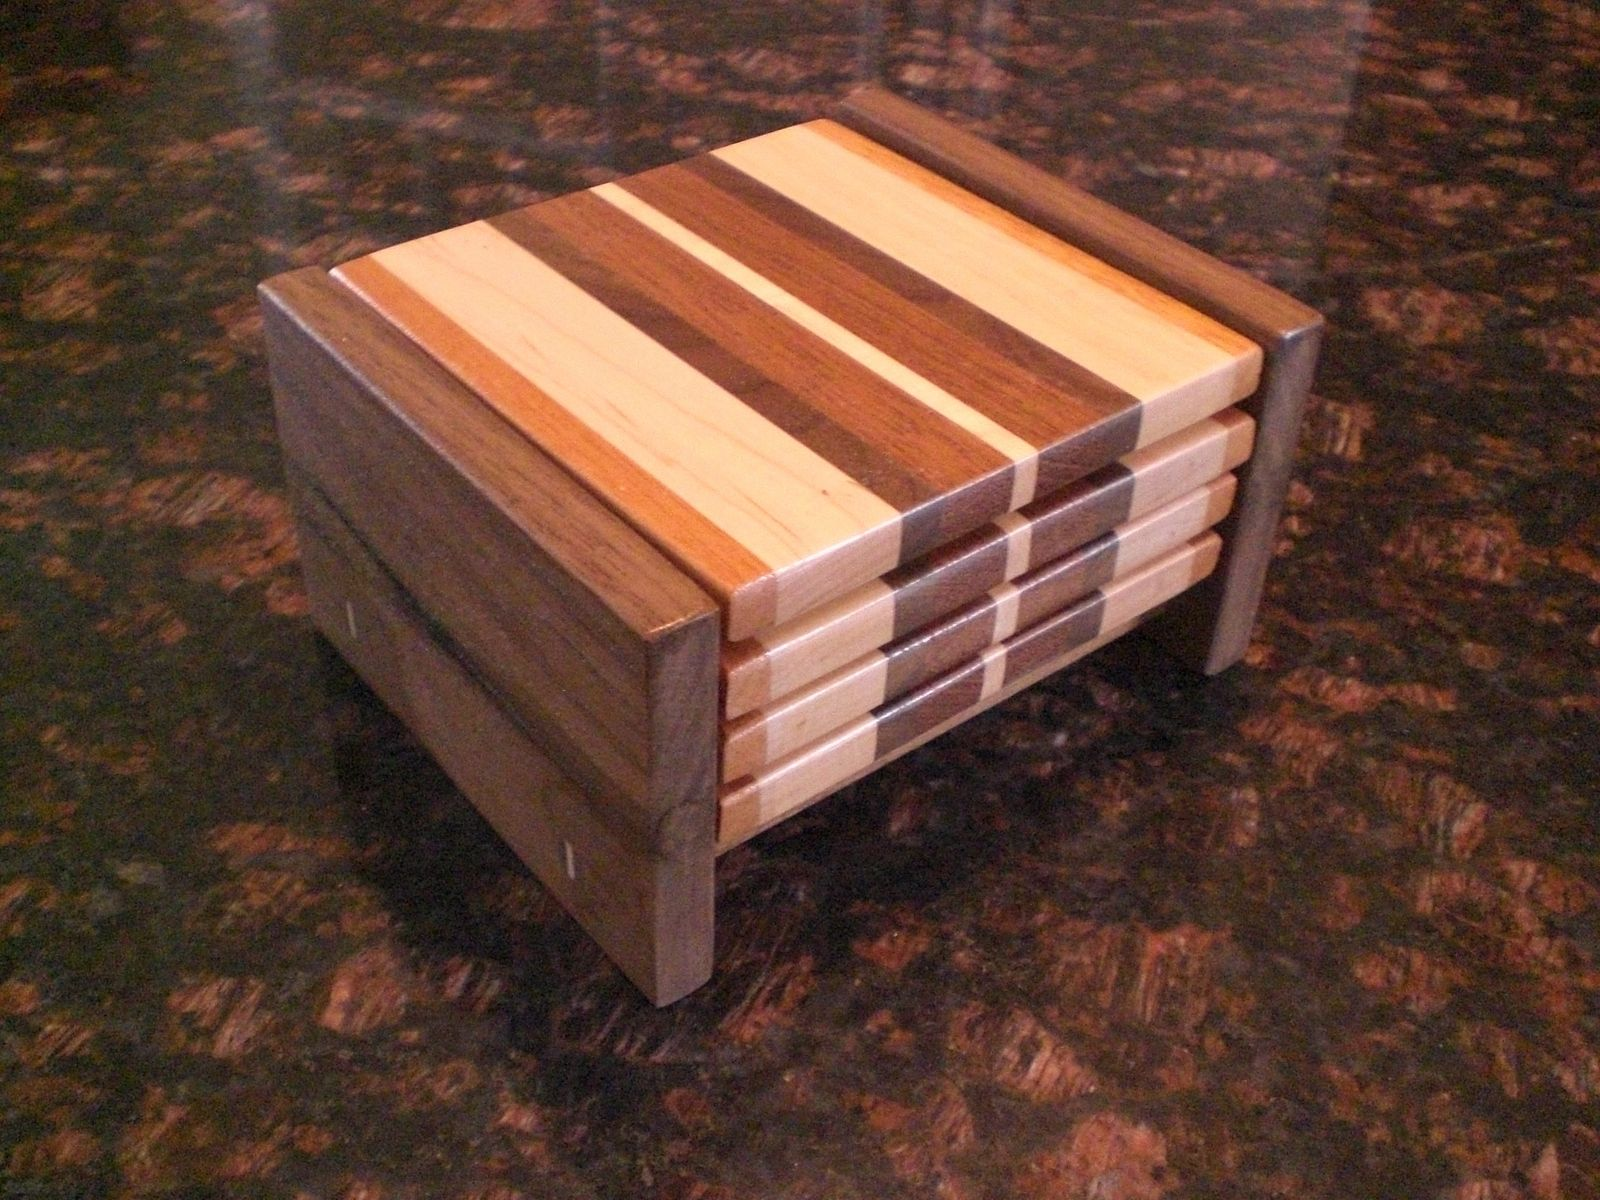 Handmade Wood Coasters By Oceanside Woodworking Inc